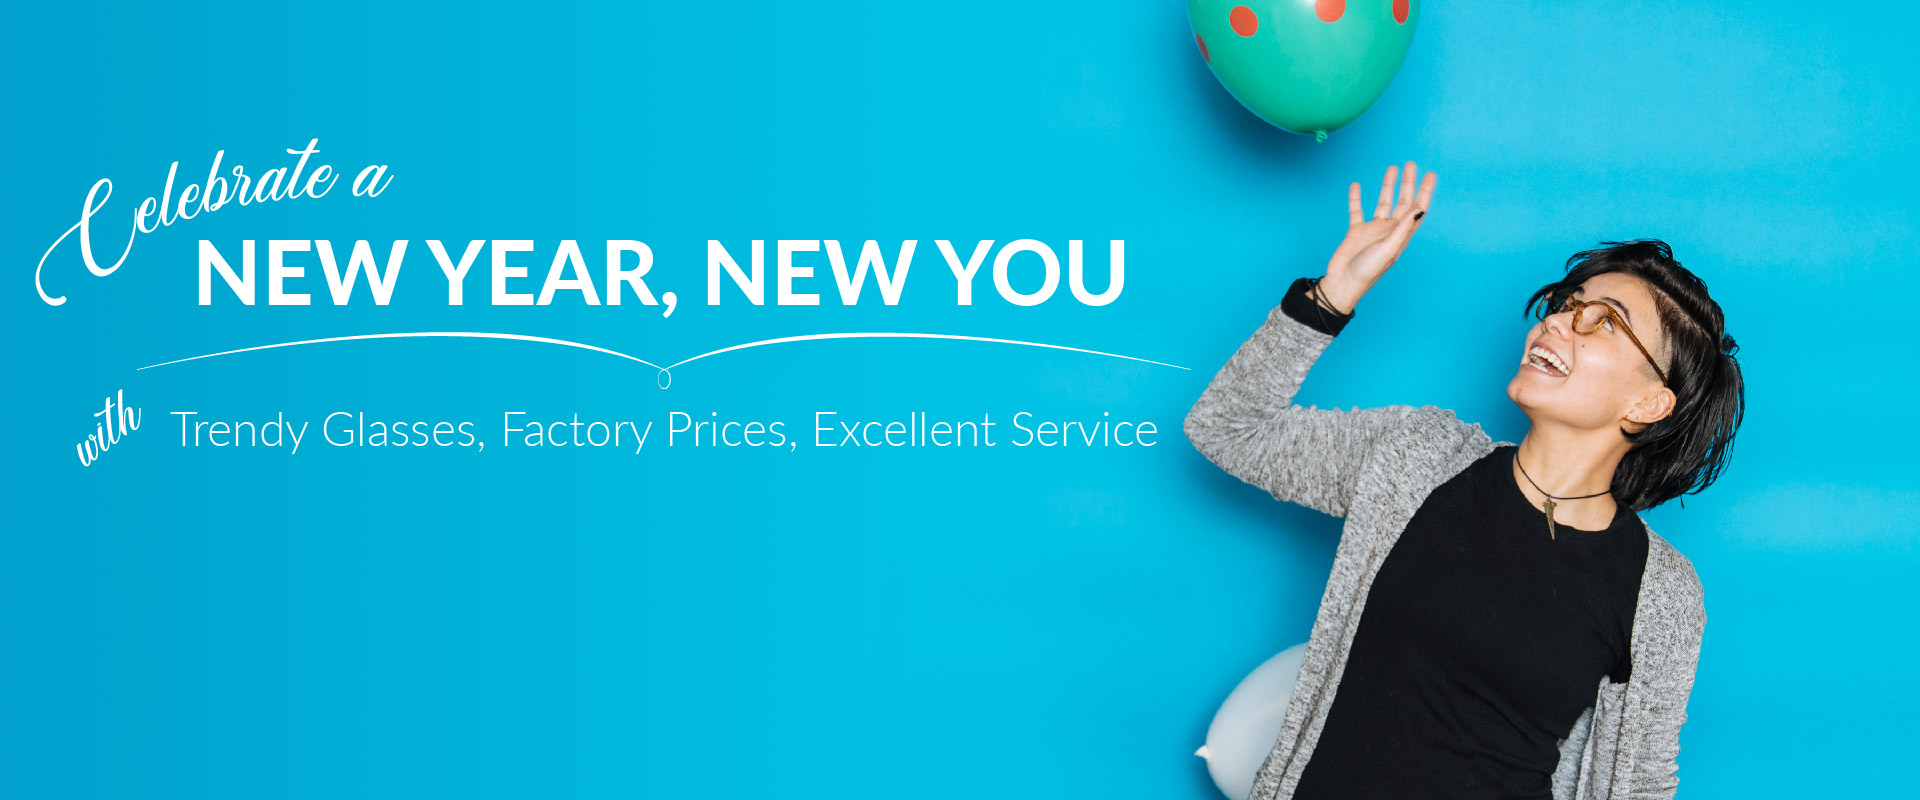 Celebrate a New Year and New You with Trendy Glasses, Factory Prices, and Excellent Service only at payneglasses.com.